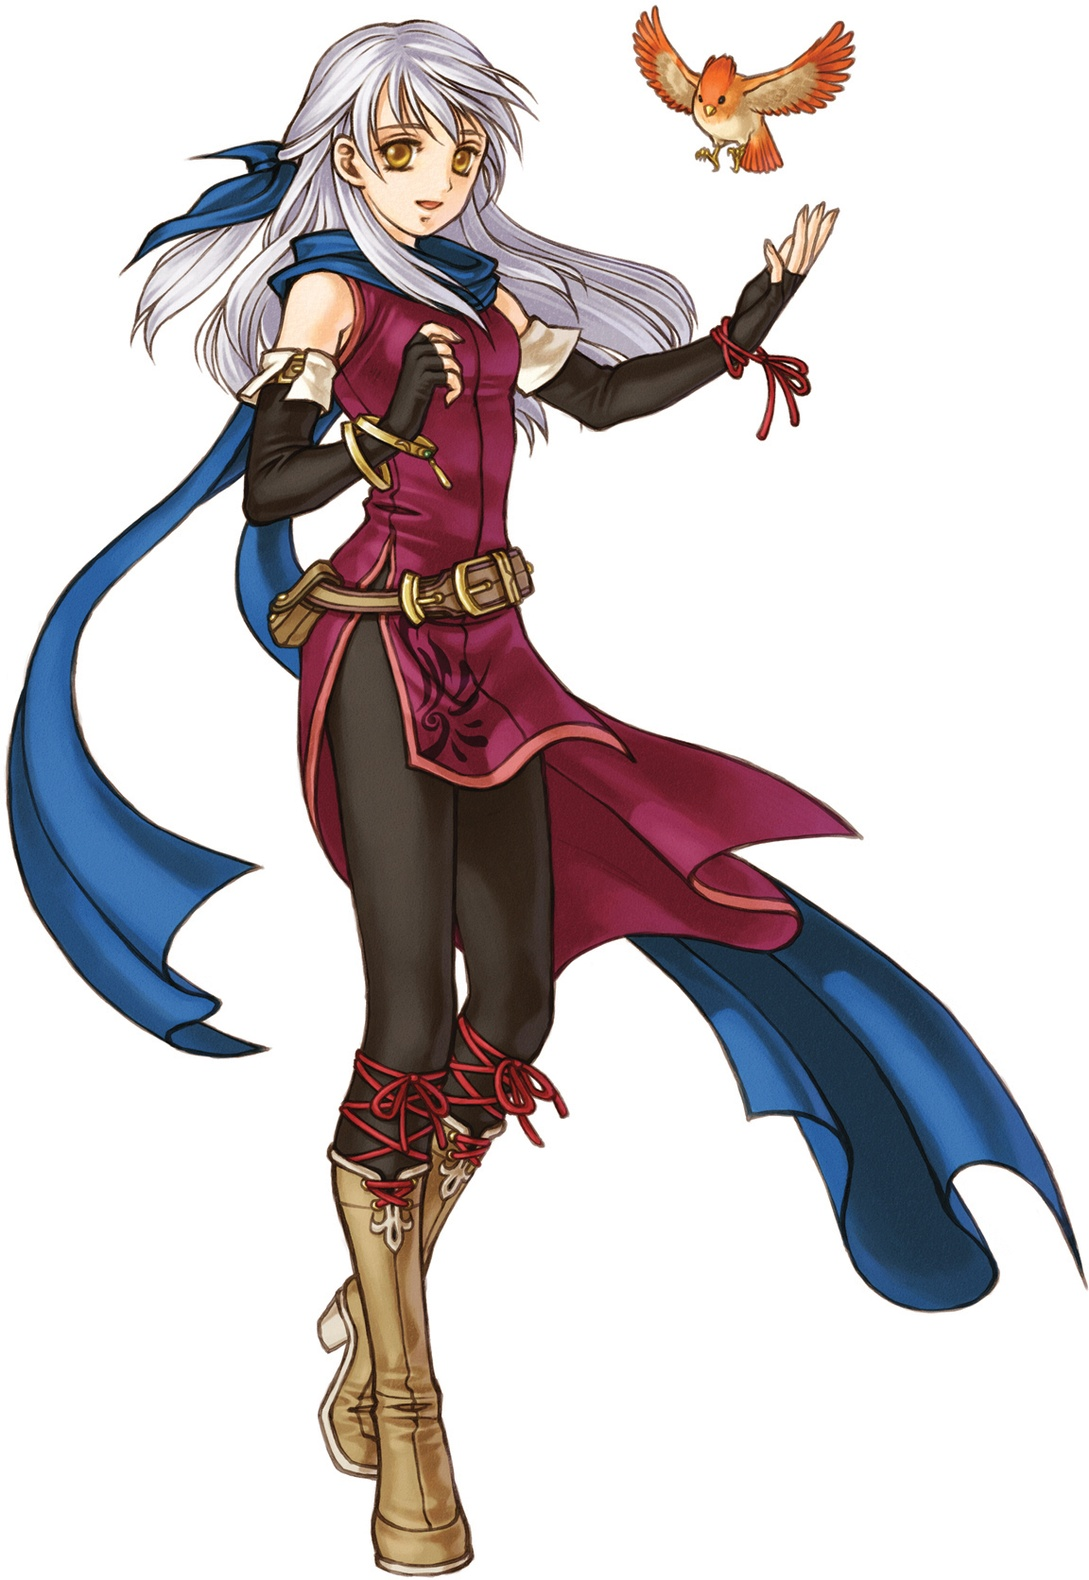 The story hinges around Micaiah, a mage that leads the liberation of Daein.